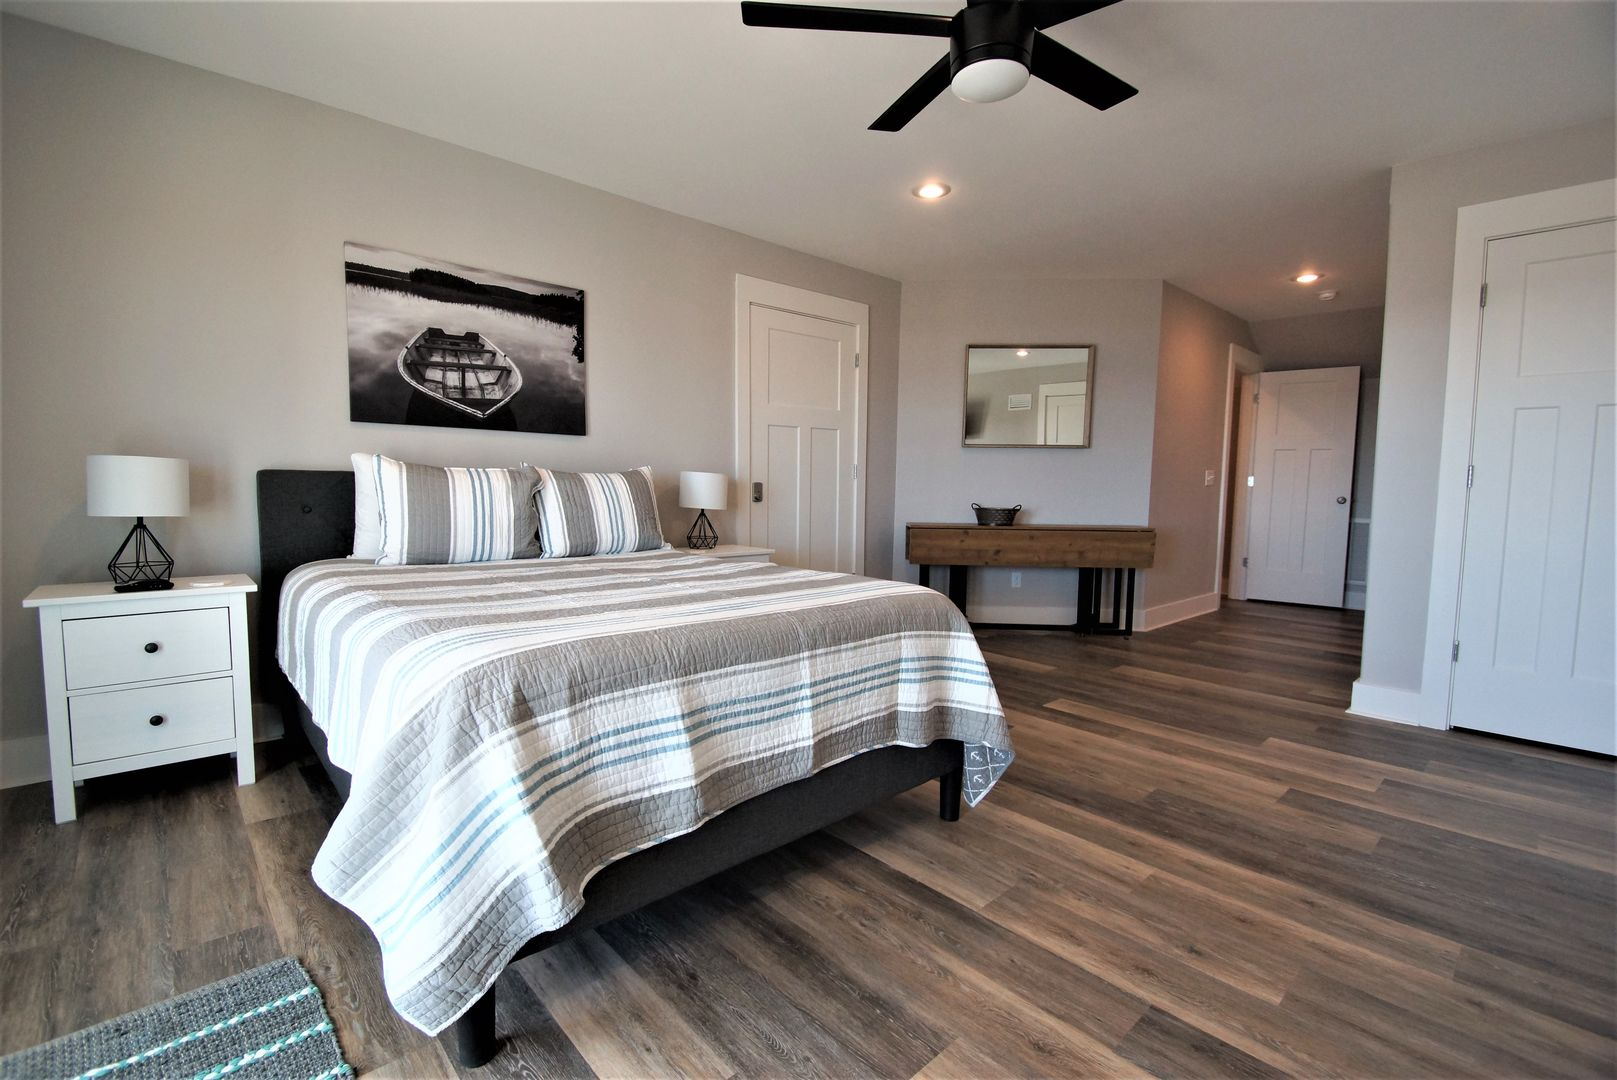 The spacious master has a queen bed to sleep 2 and twin nightstands.